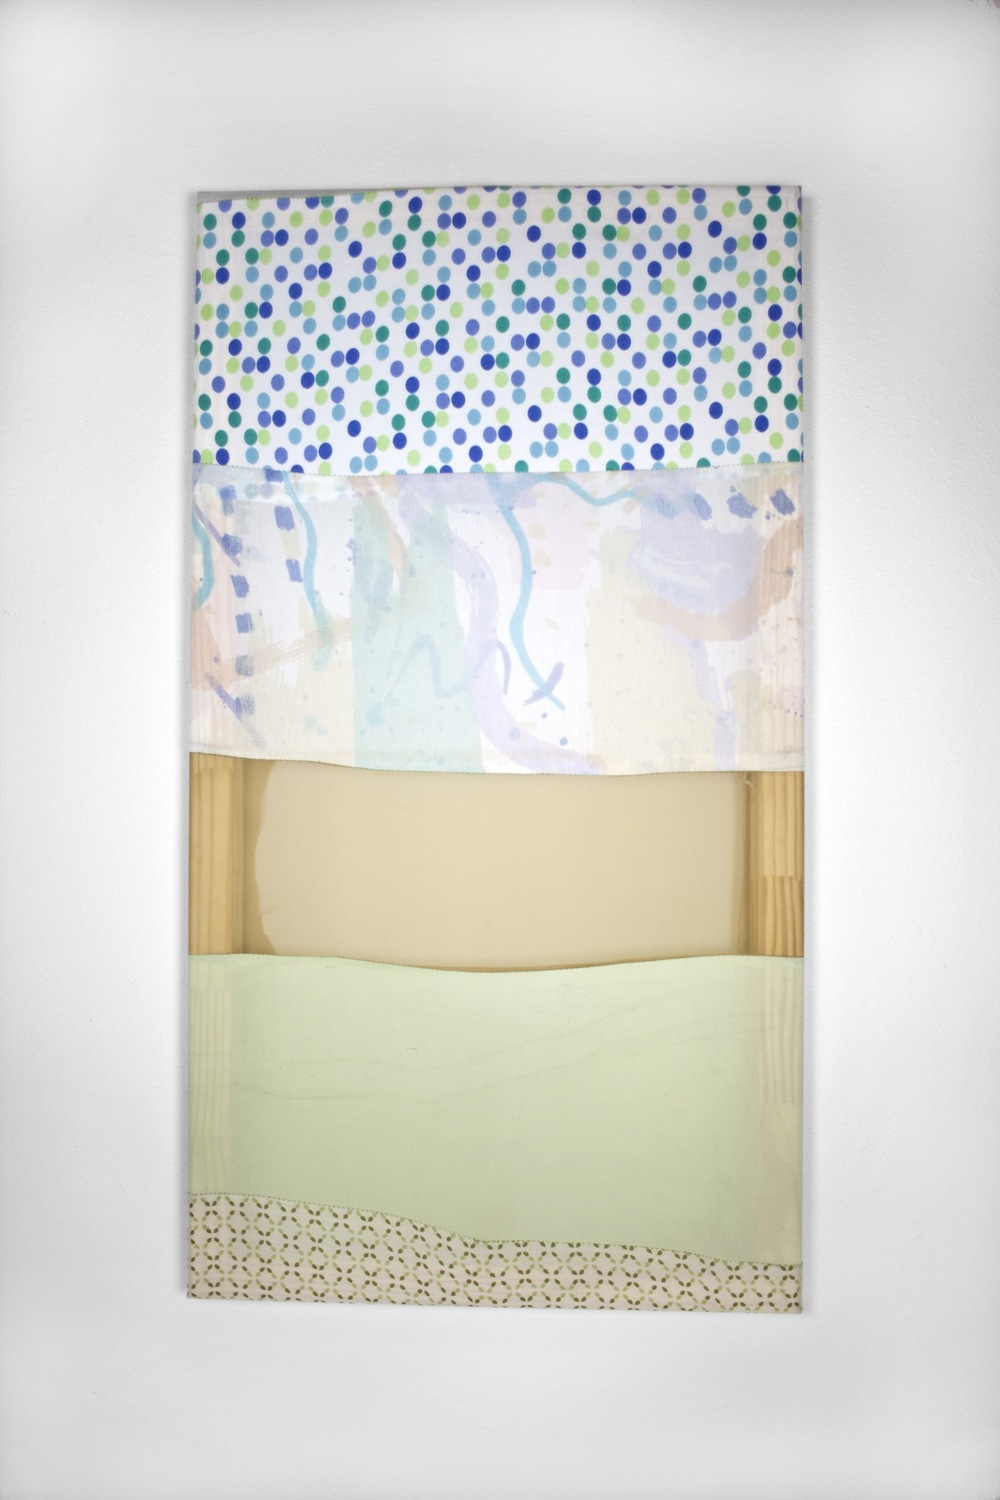 Tameka Norris   Hamutal (Contrapposto series) , 2013 bedsheets, found fabric, and thread 44 x 24 inches 111.8 x 61 cm